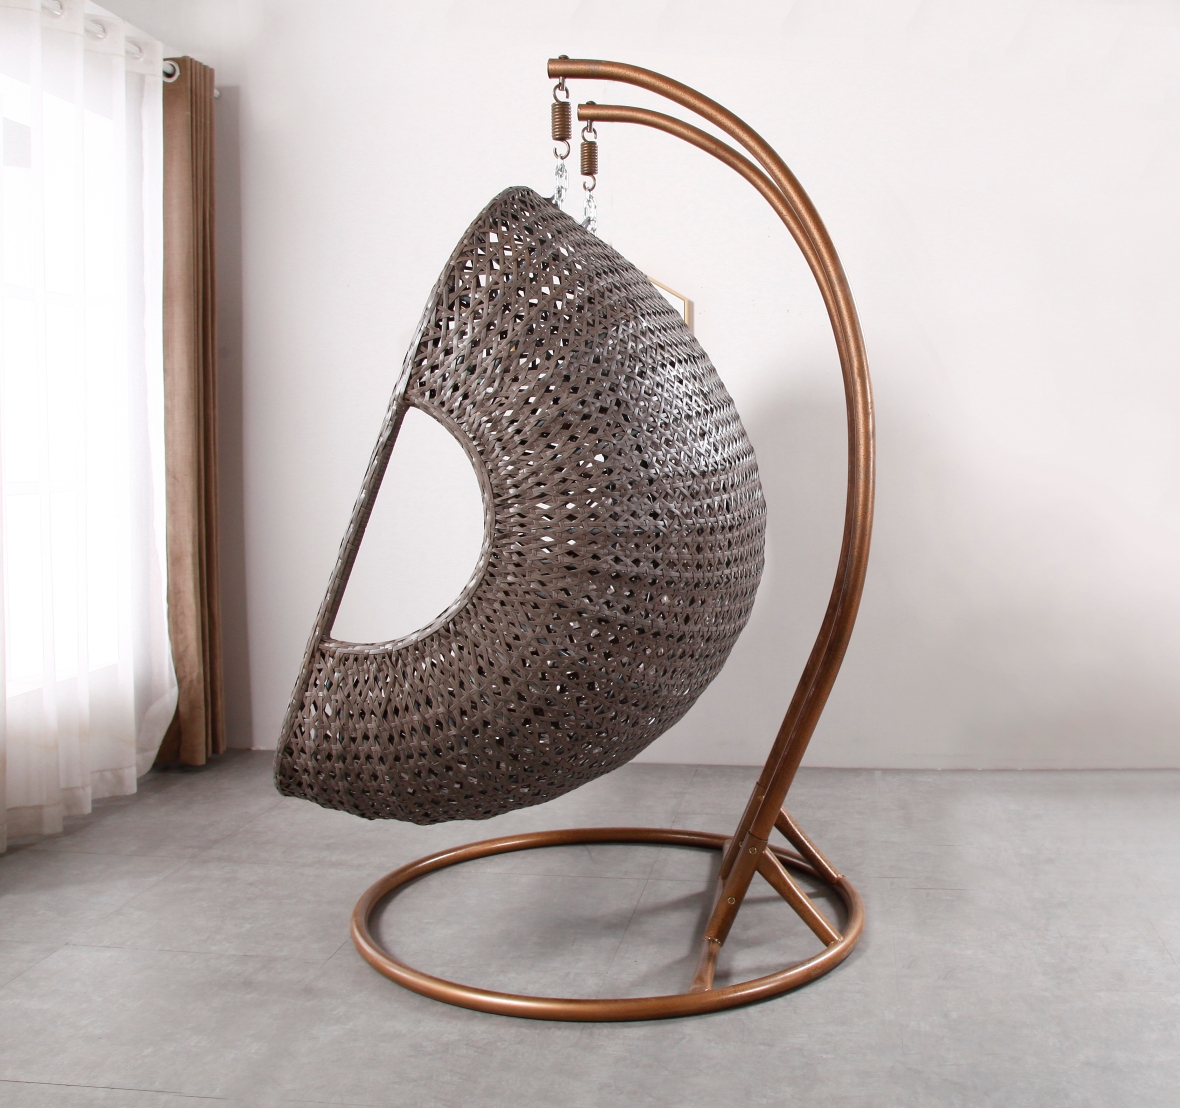 COCOON 2 SEAT DELUXE HANGING CHAIR